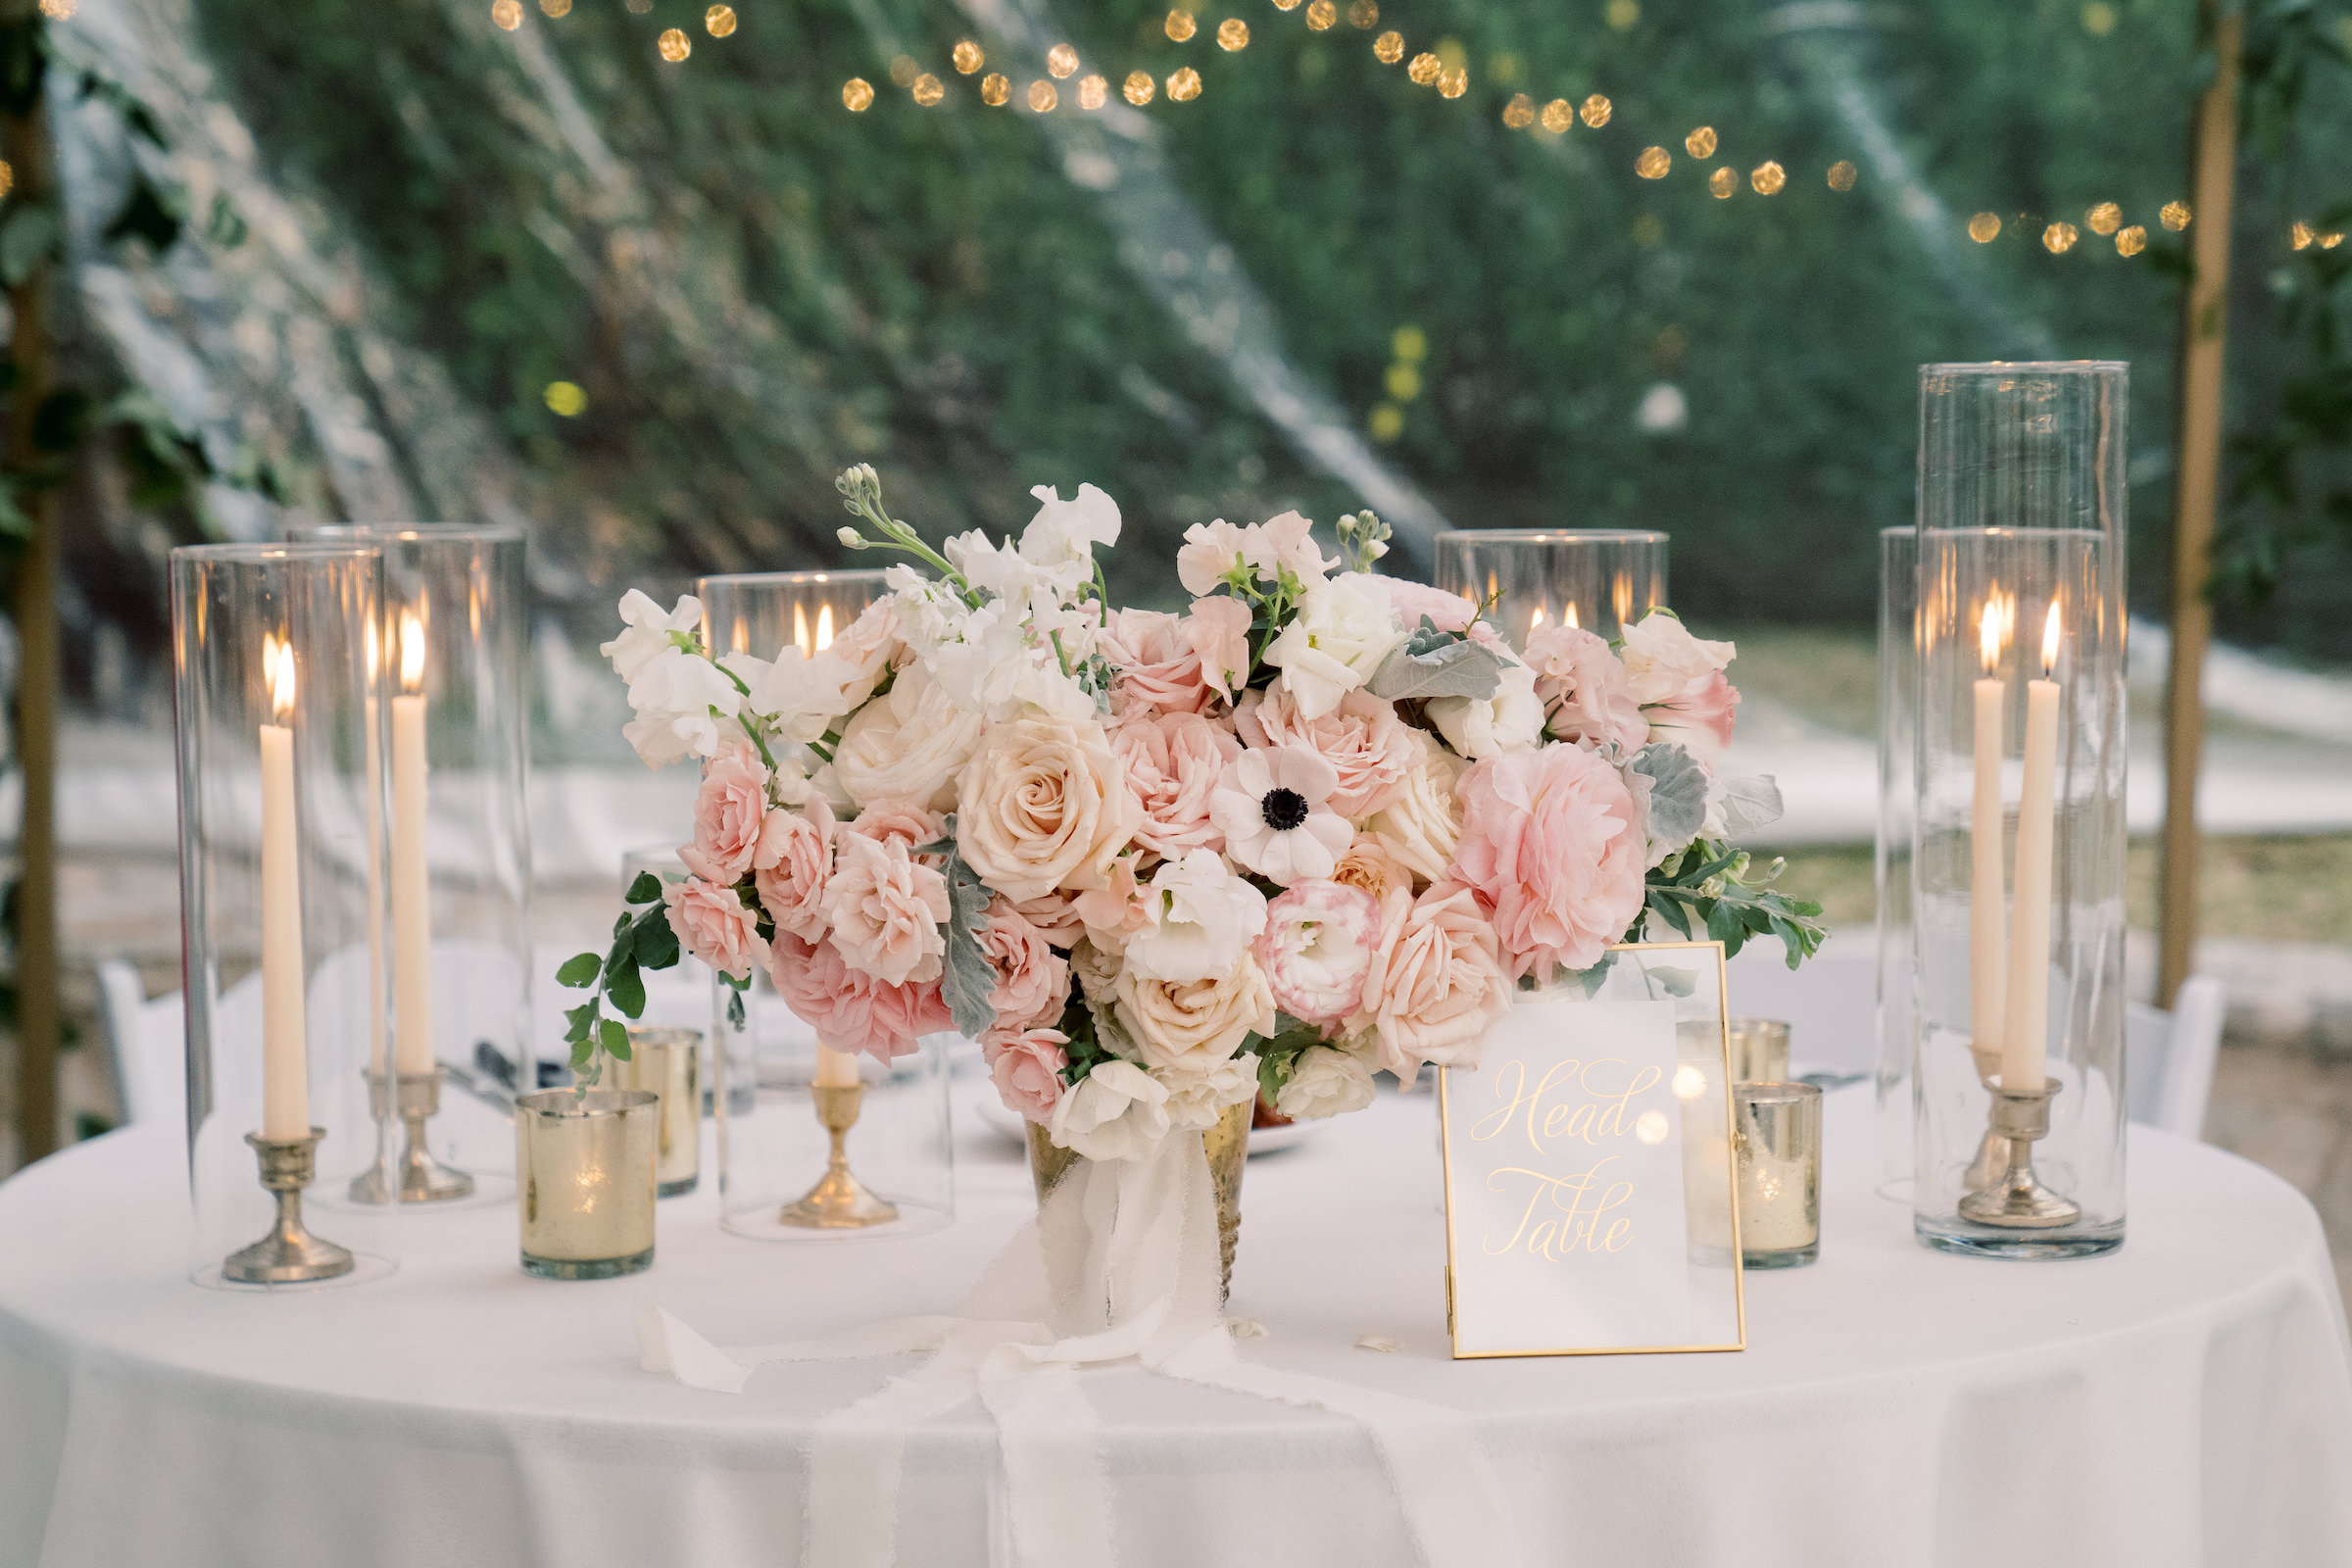 tablescape with pink and white florals among glass votives with glowing tall white candlesticks